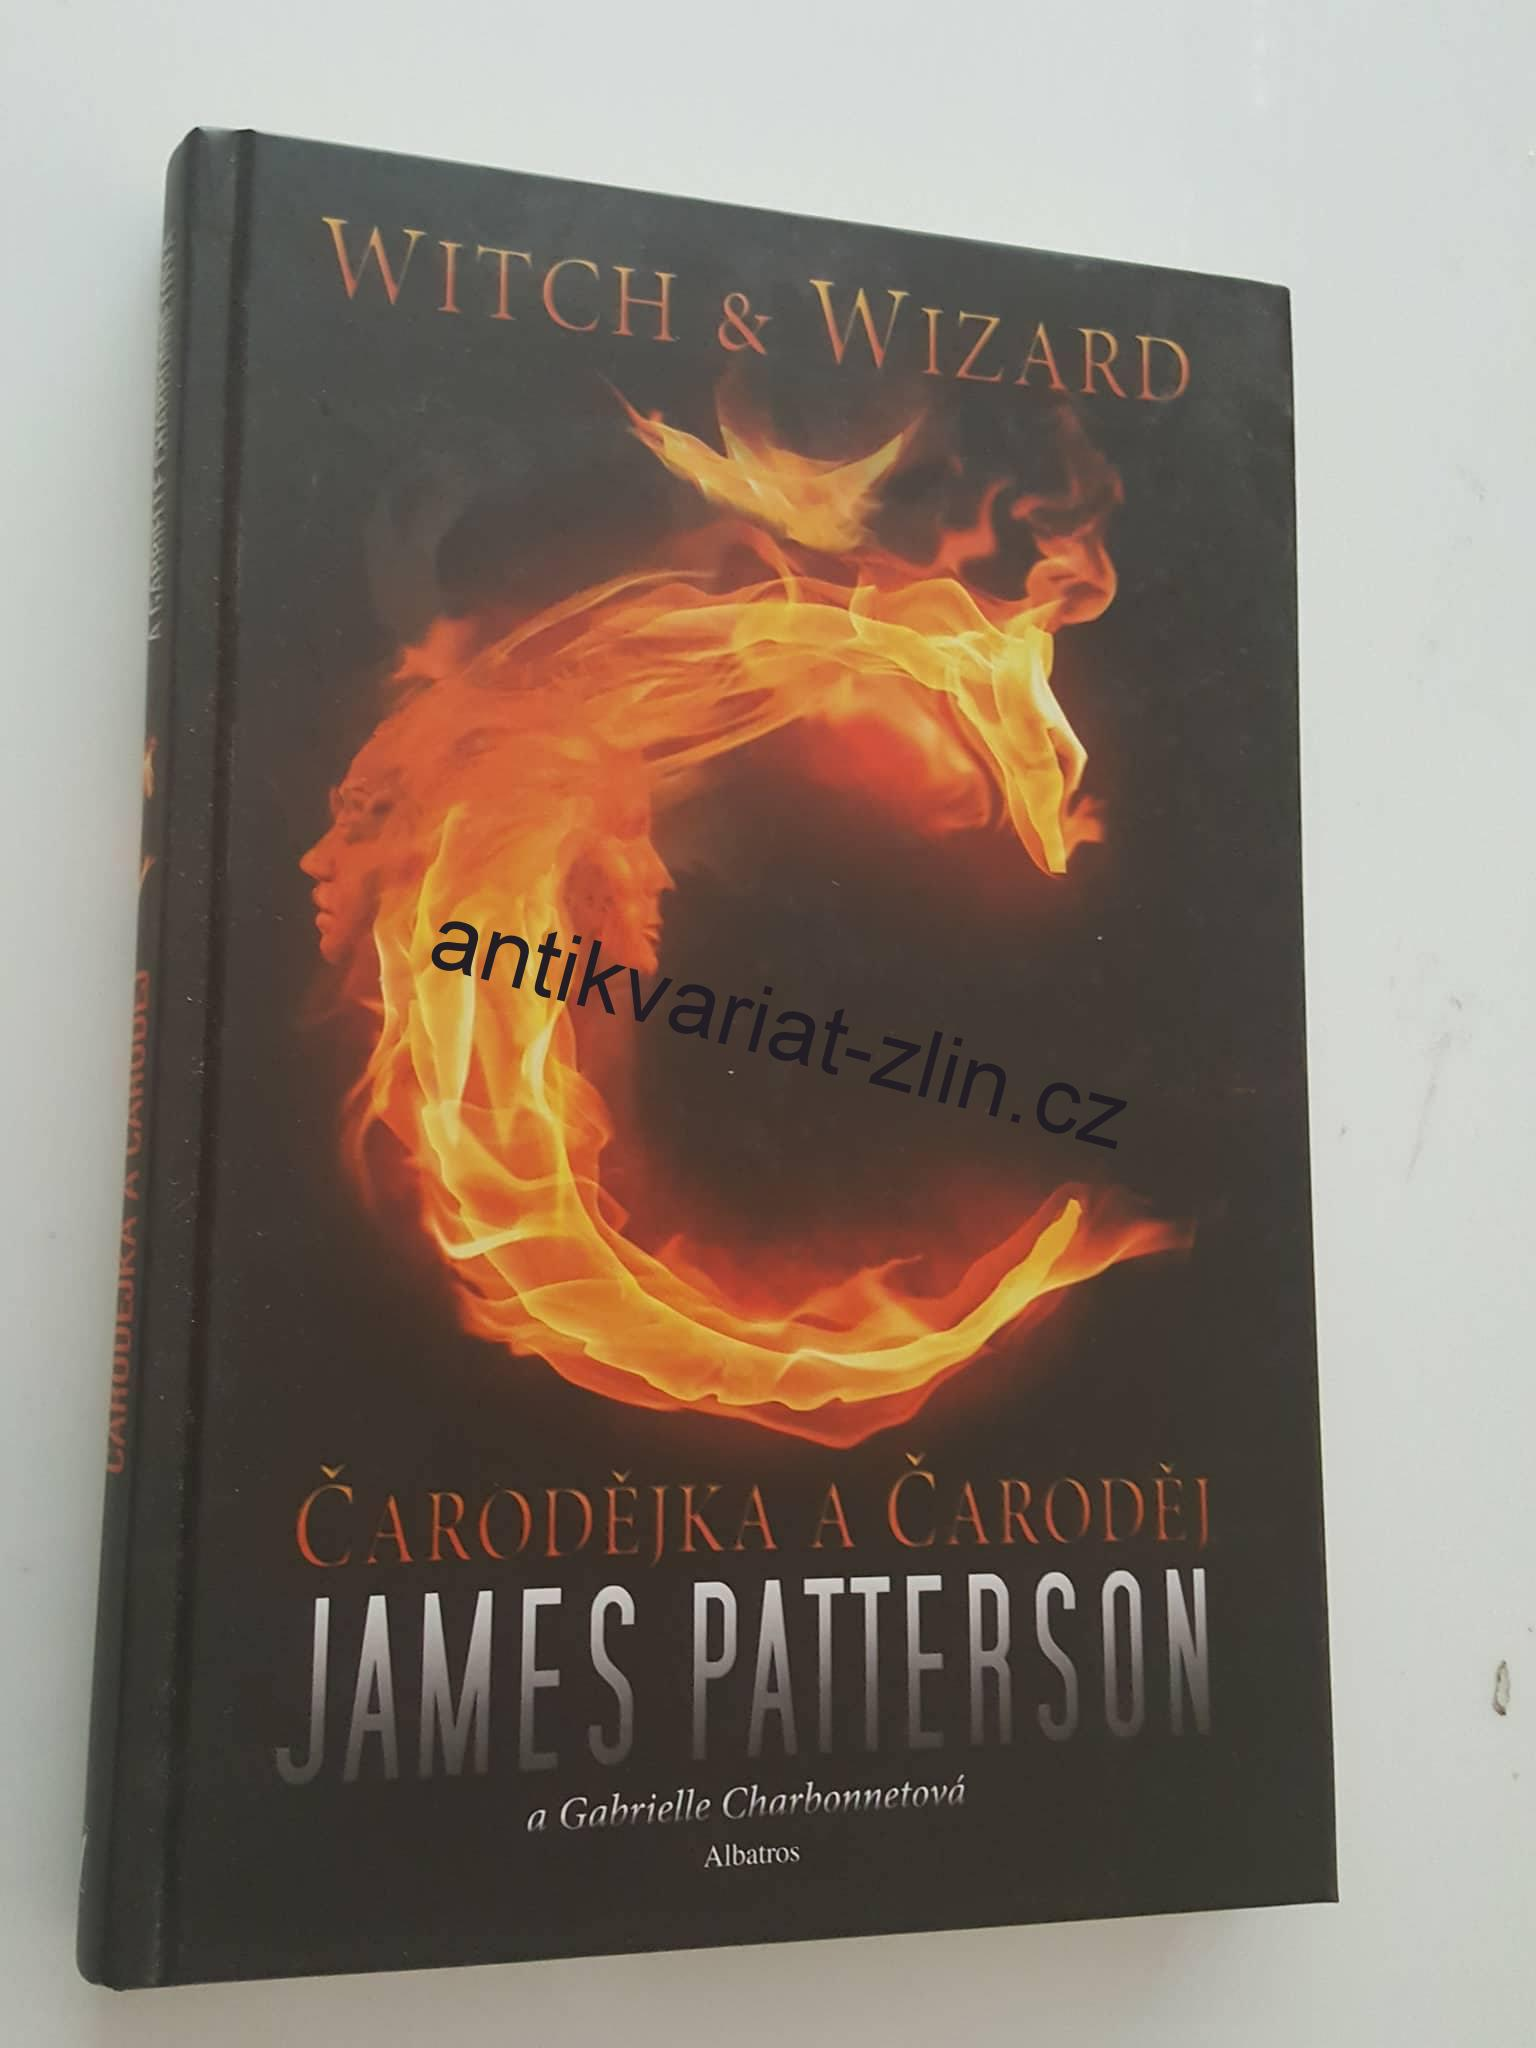 JAMES PATTERSON - WITCH & WIZARD - ČARODĚJKA A ČARODĚJ